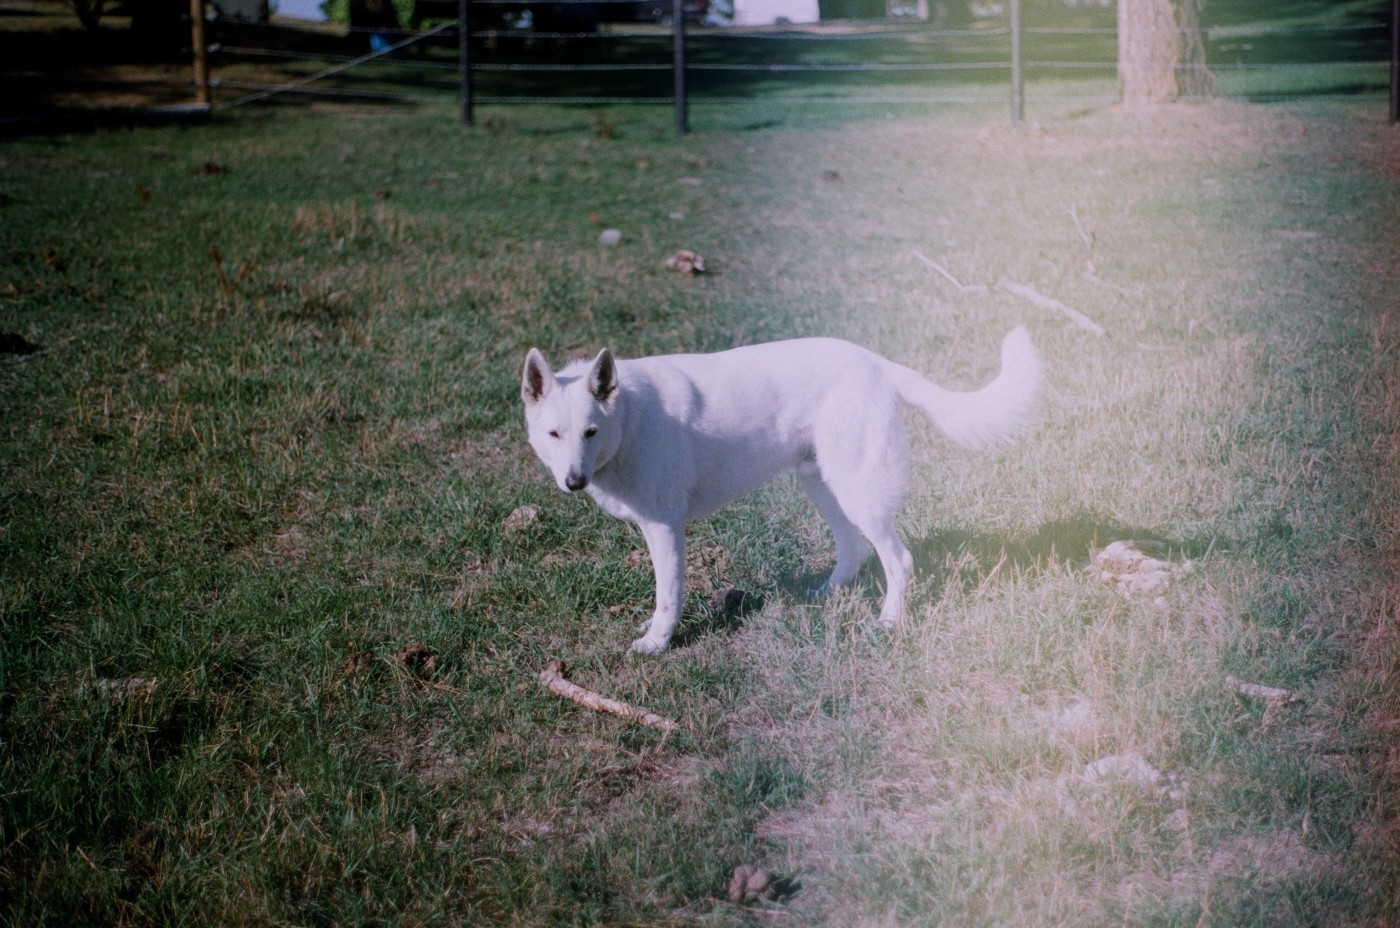 a photograph of a white dog with a haze